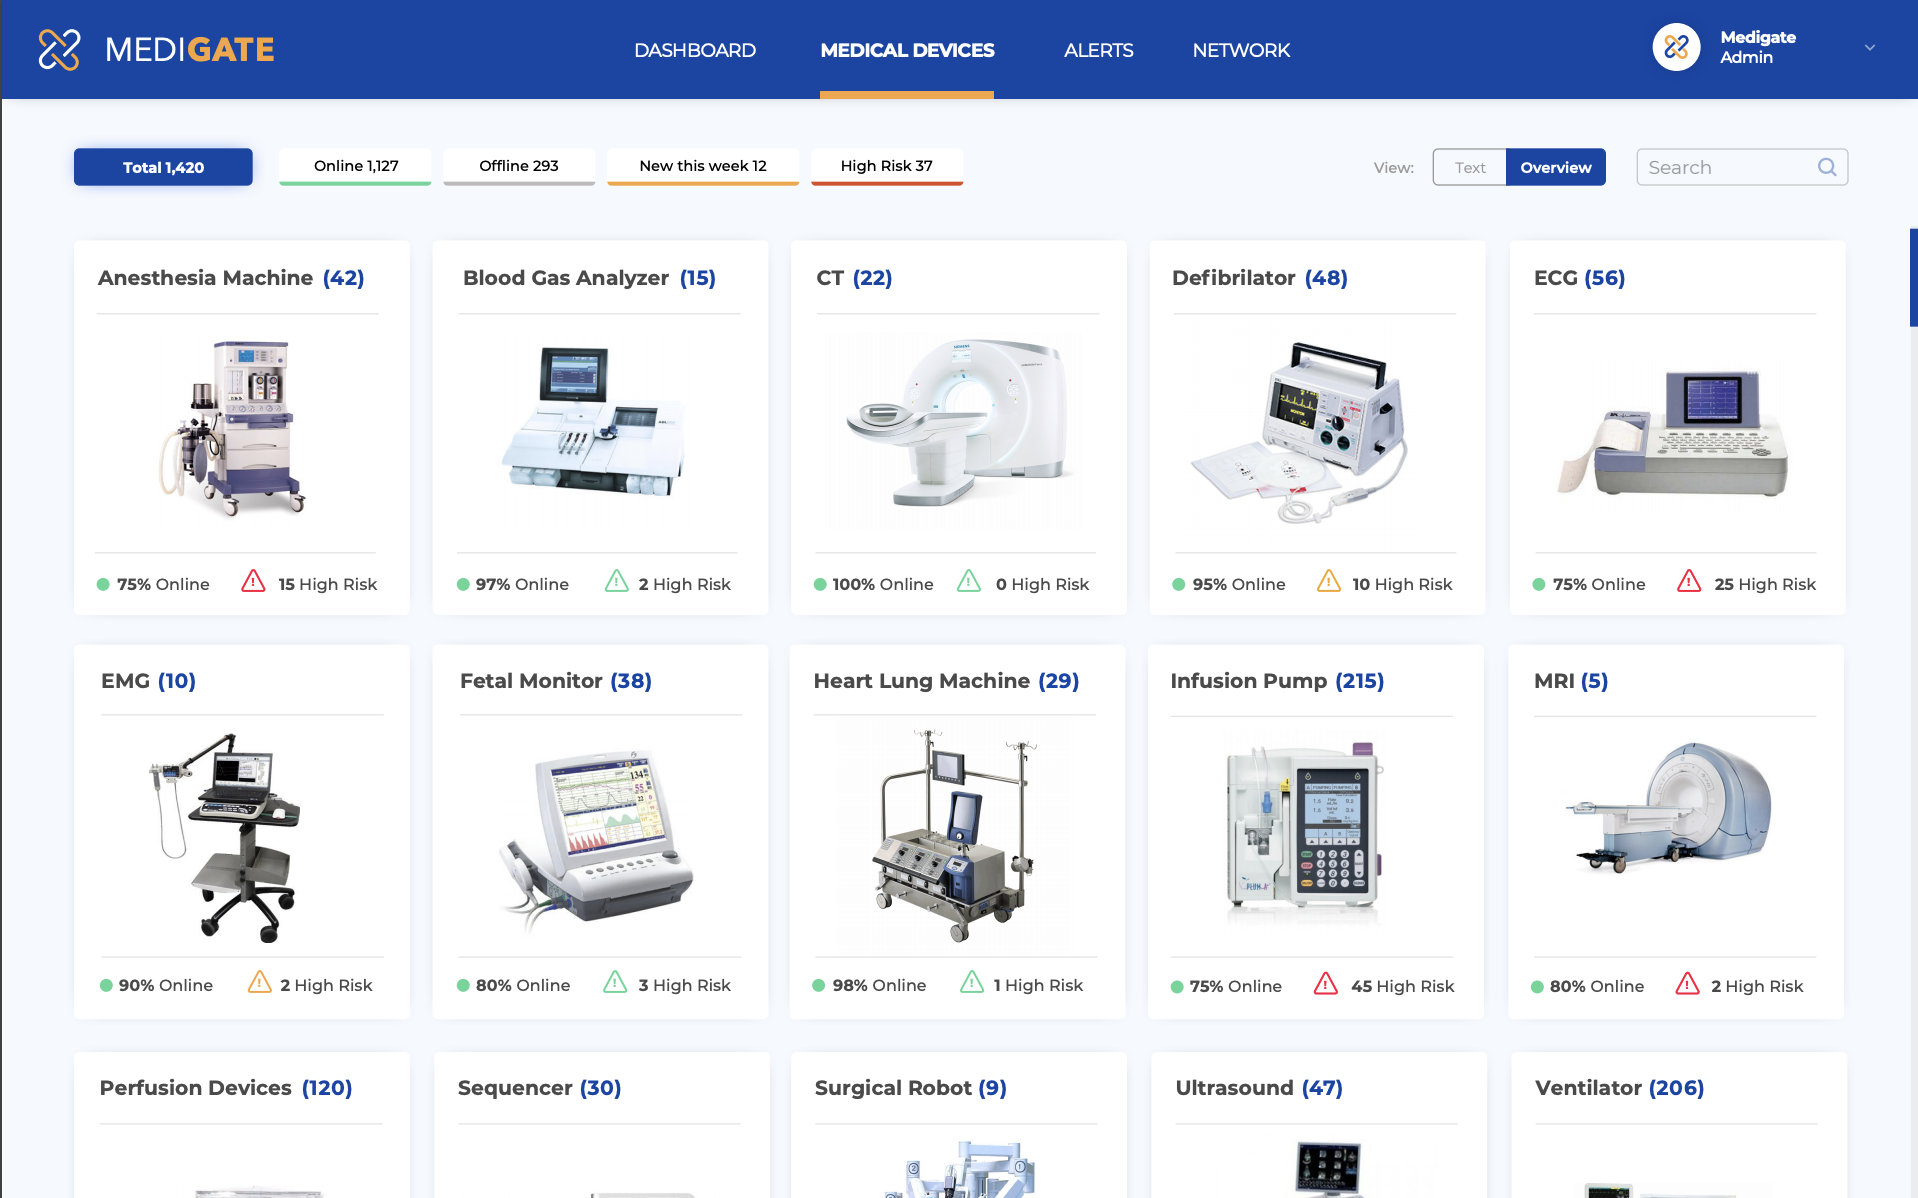 Networked medical devices at a health care provider and their vulnerability to cyber attack, as seen in a screenshot of a display created by the Medigate platform